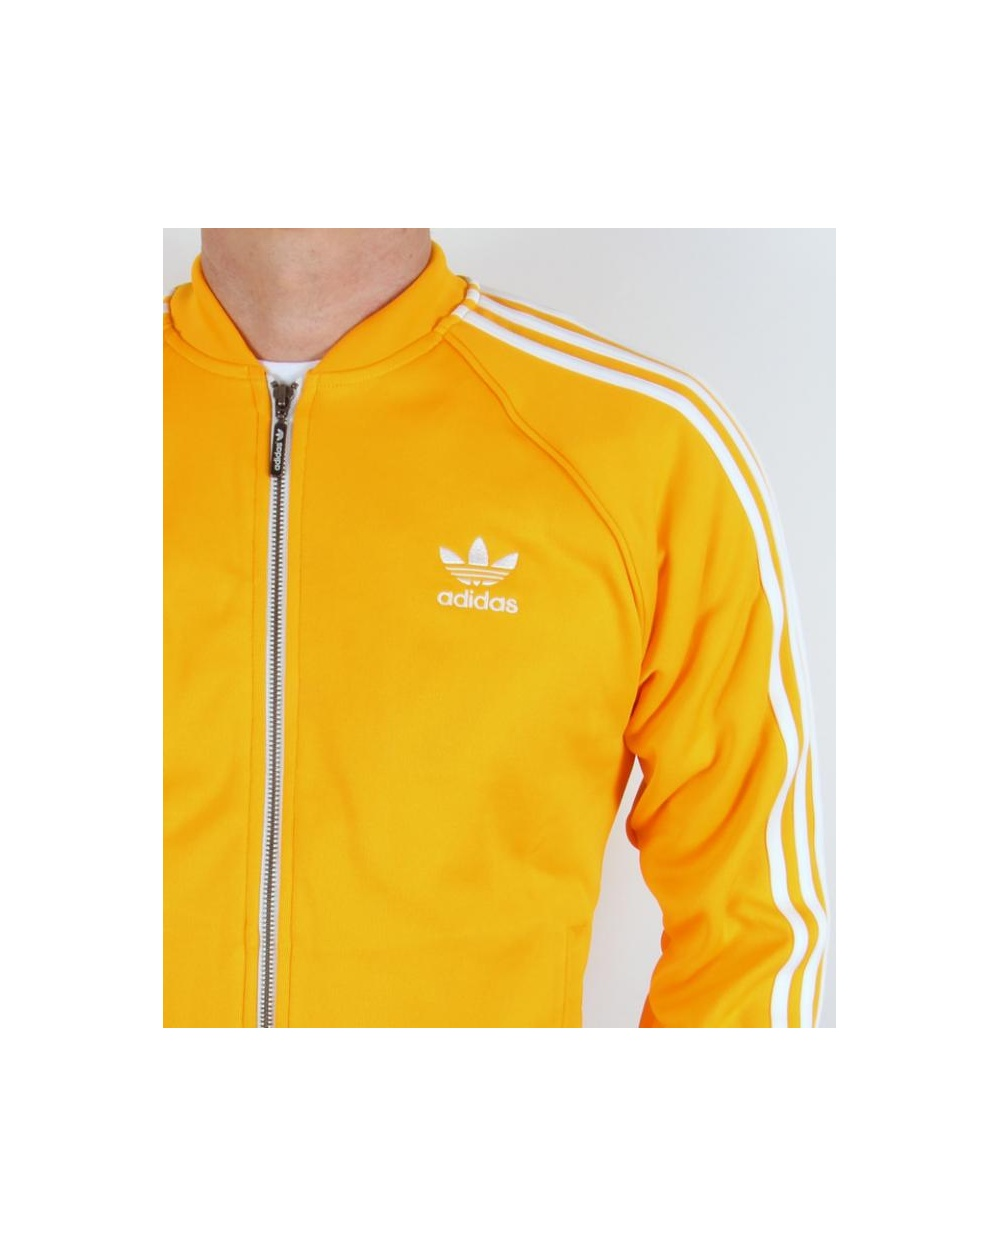 27407c580d6a yellow adidas tracksuit yellow adidas tracksuit ...